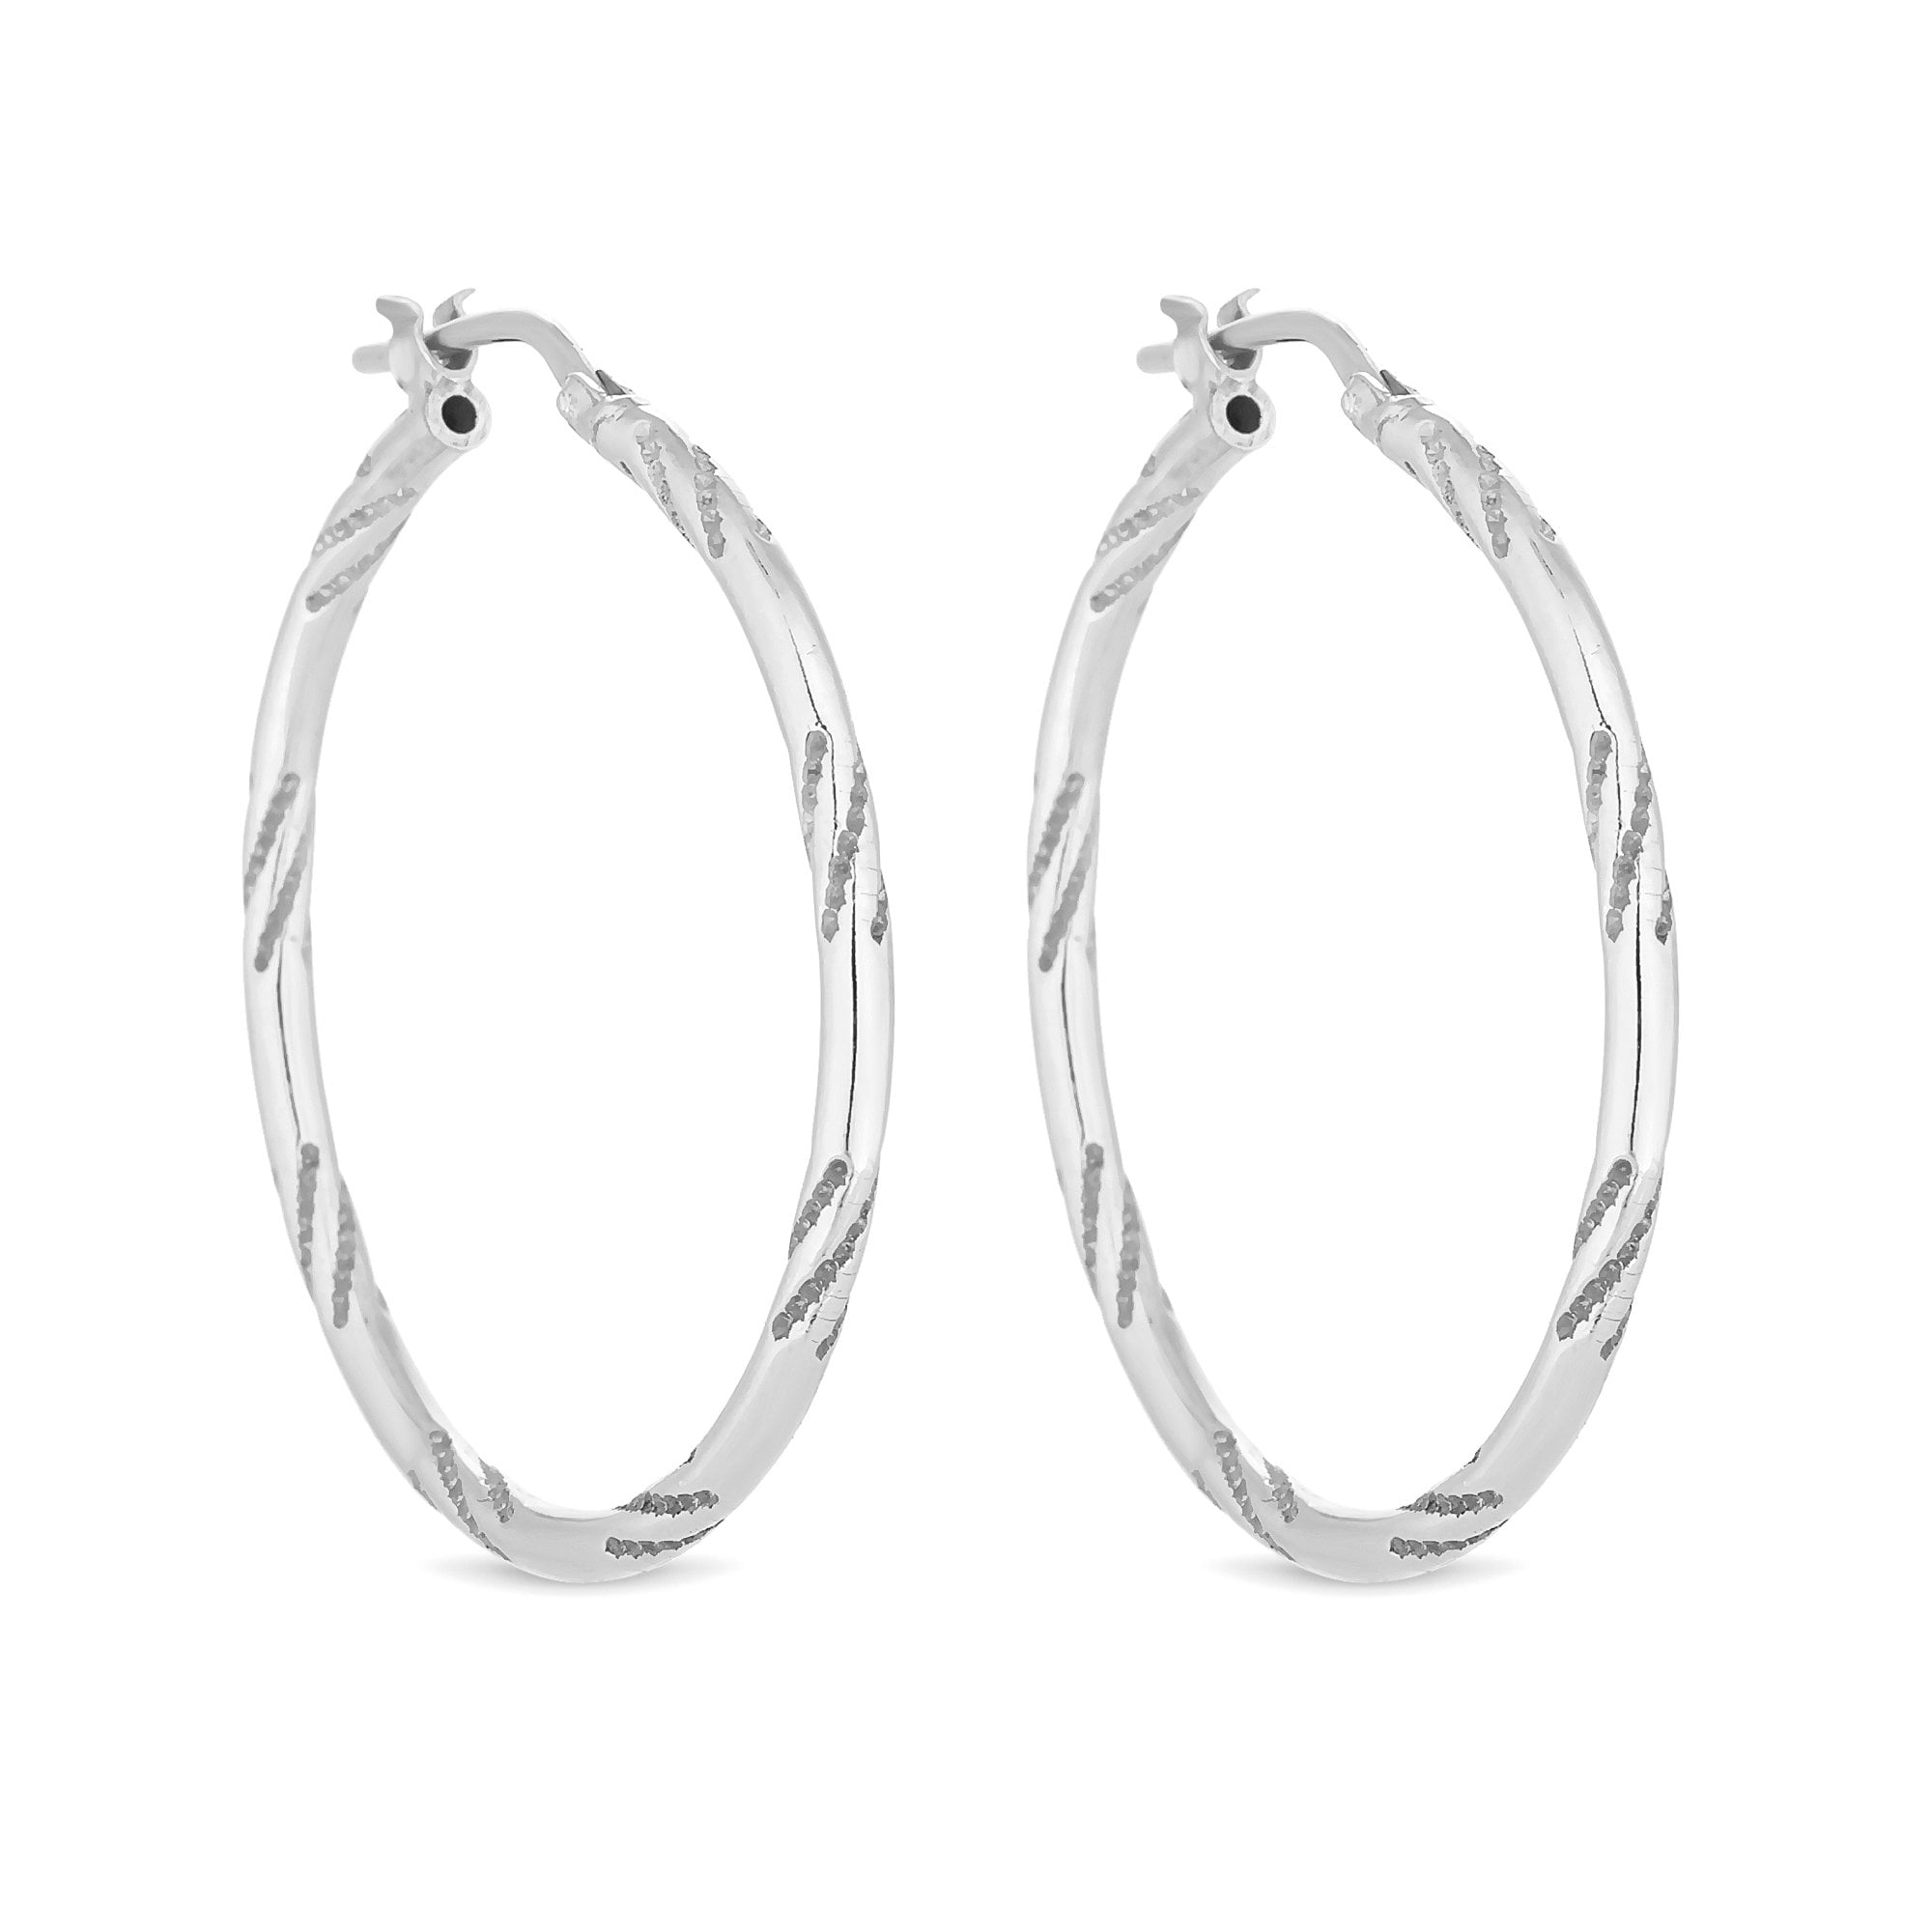 95db3ce92 Simply Silver Sterling Silver 925 Silver Bamboo Hoop Earring ...